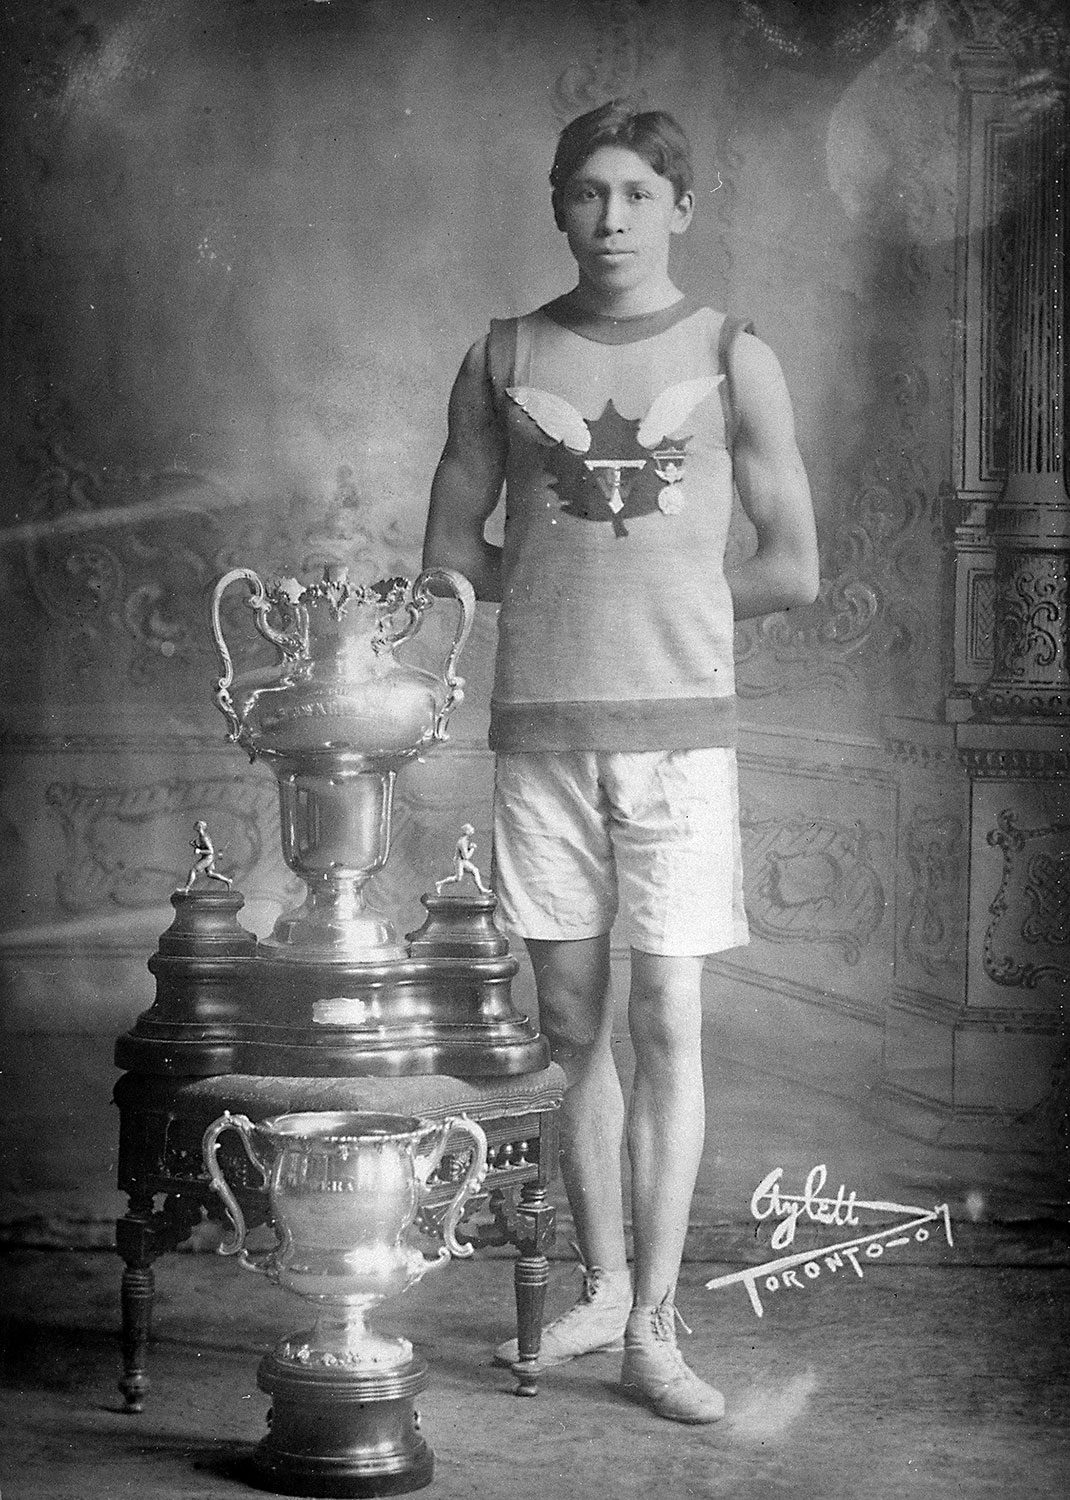 Tom Longboat with running trophies (April 22, 1907). Photo courtesy of Library and Archives Canada.